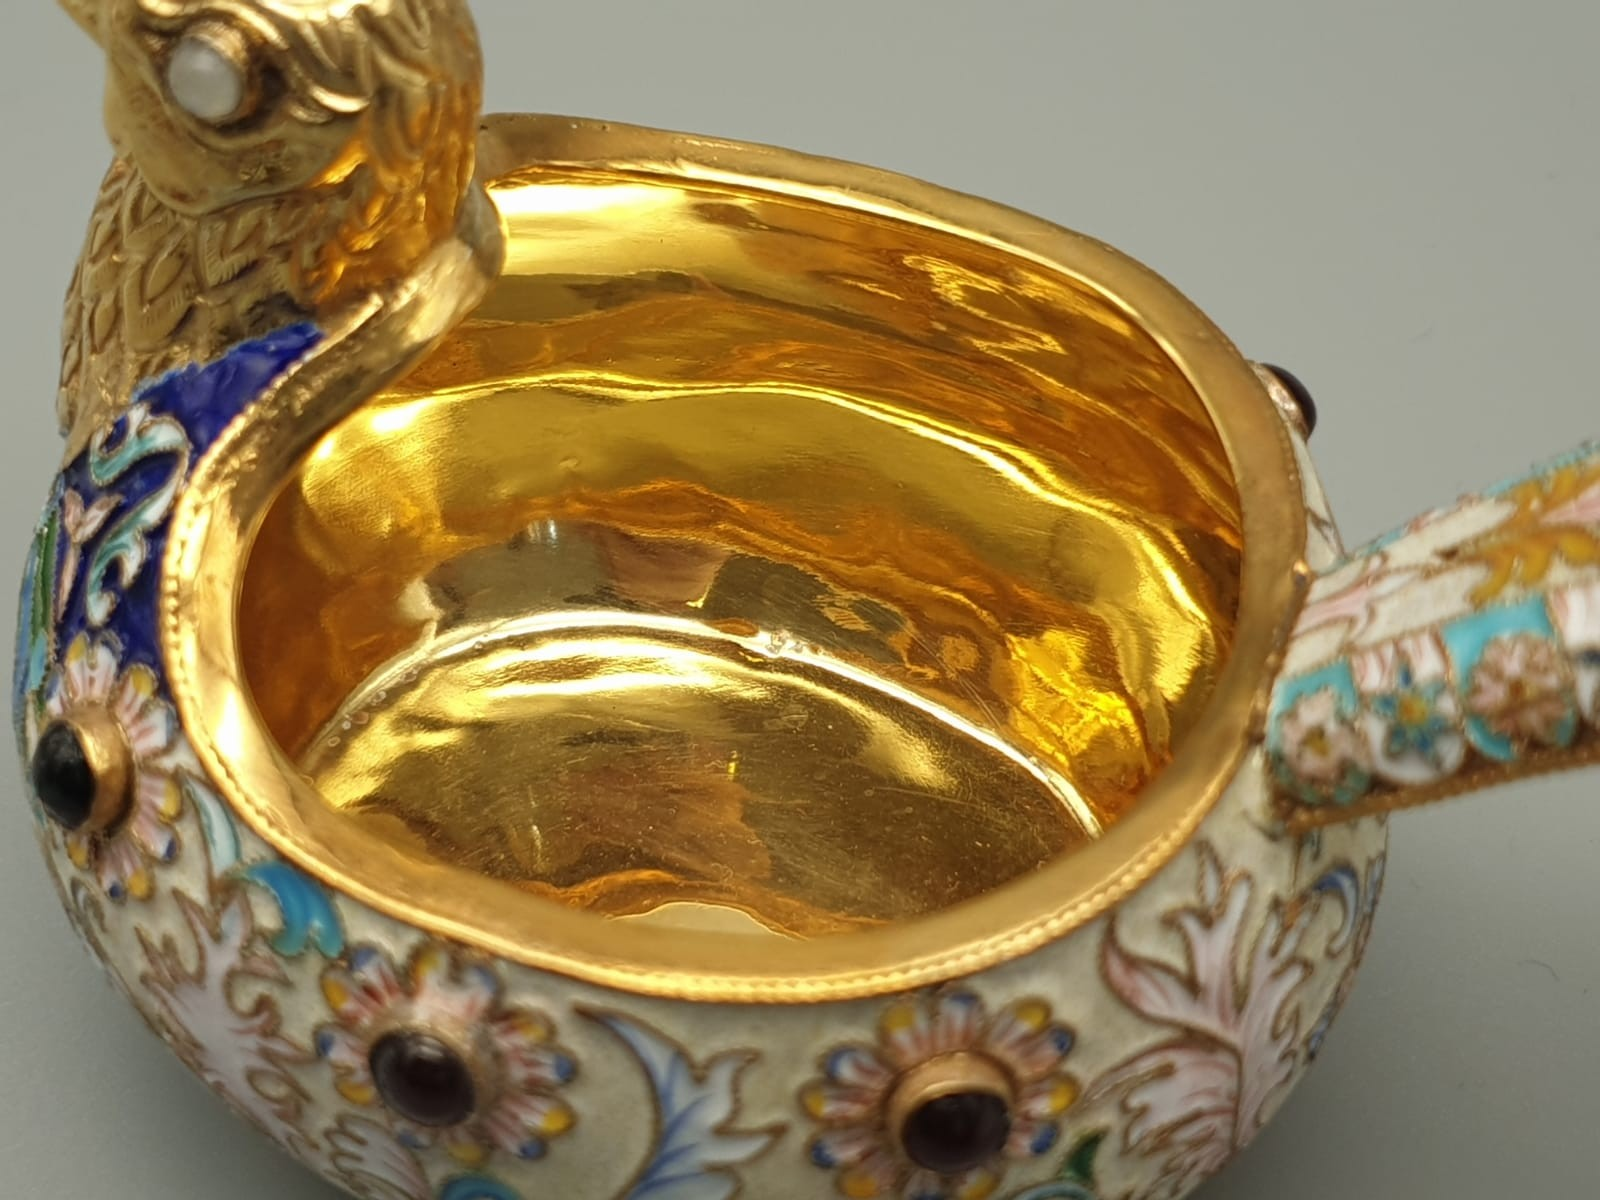 Pair of Russian 20th century silver enamel gemset kavosch bowl in the form of birds, an exquisite - Image 7 of 29